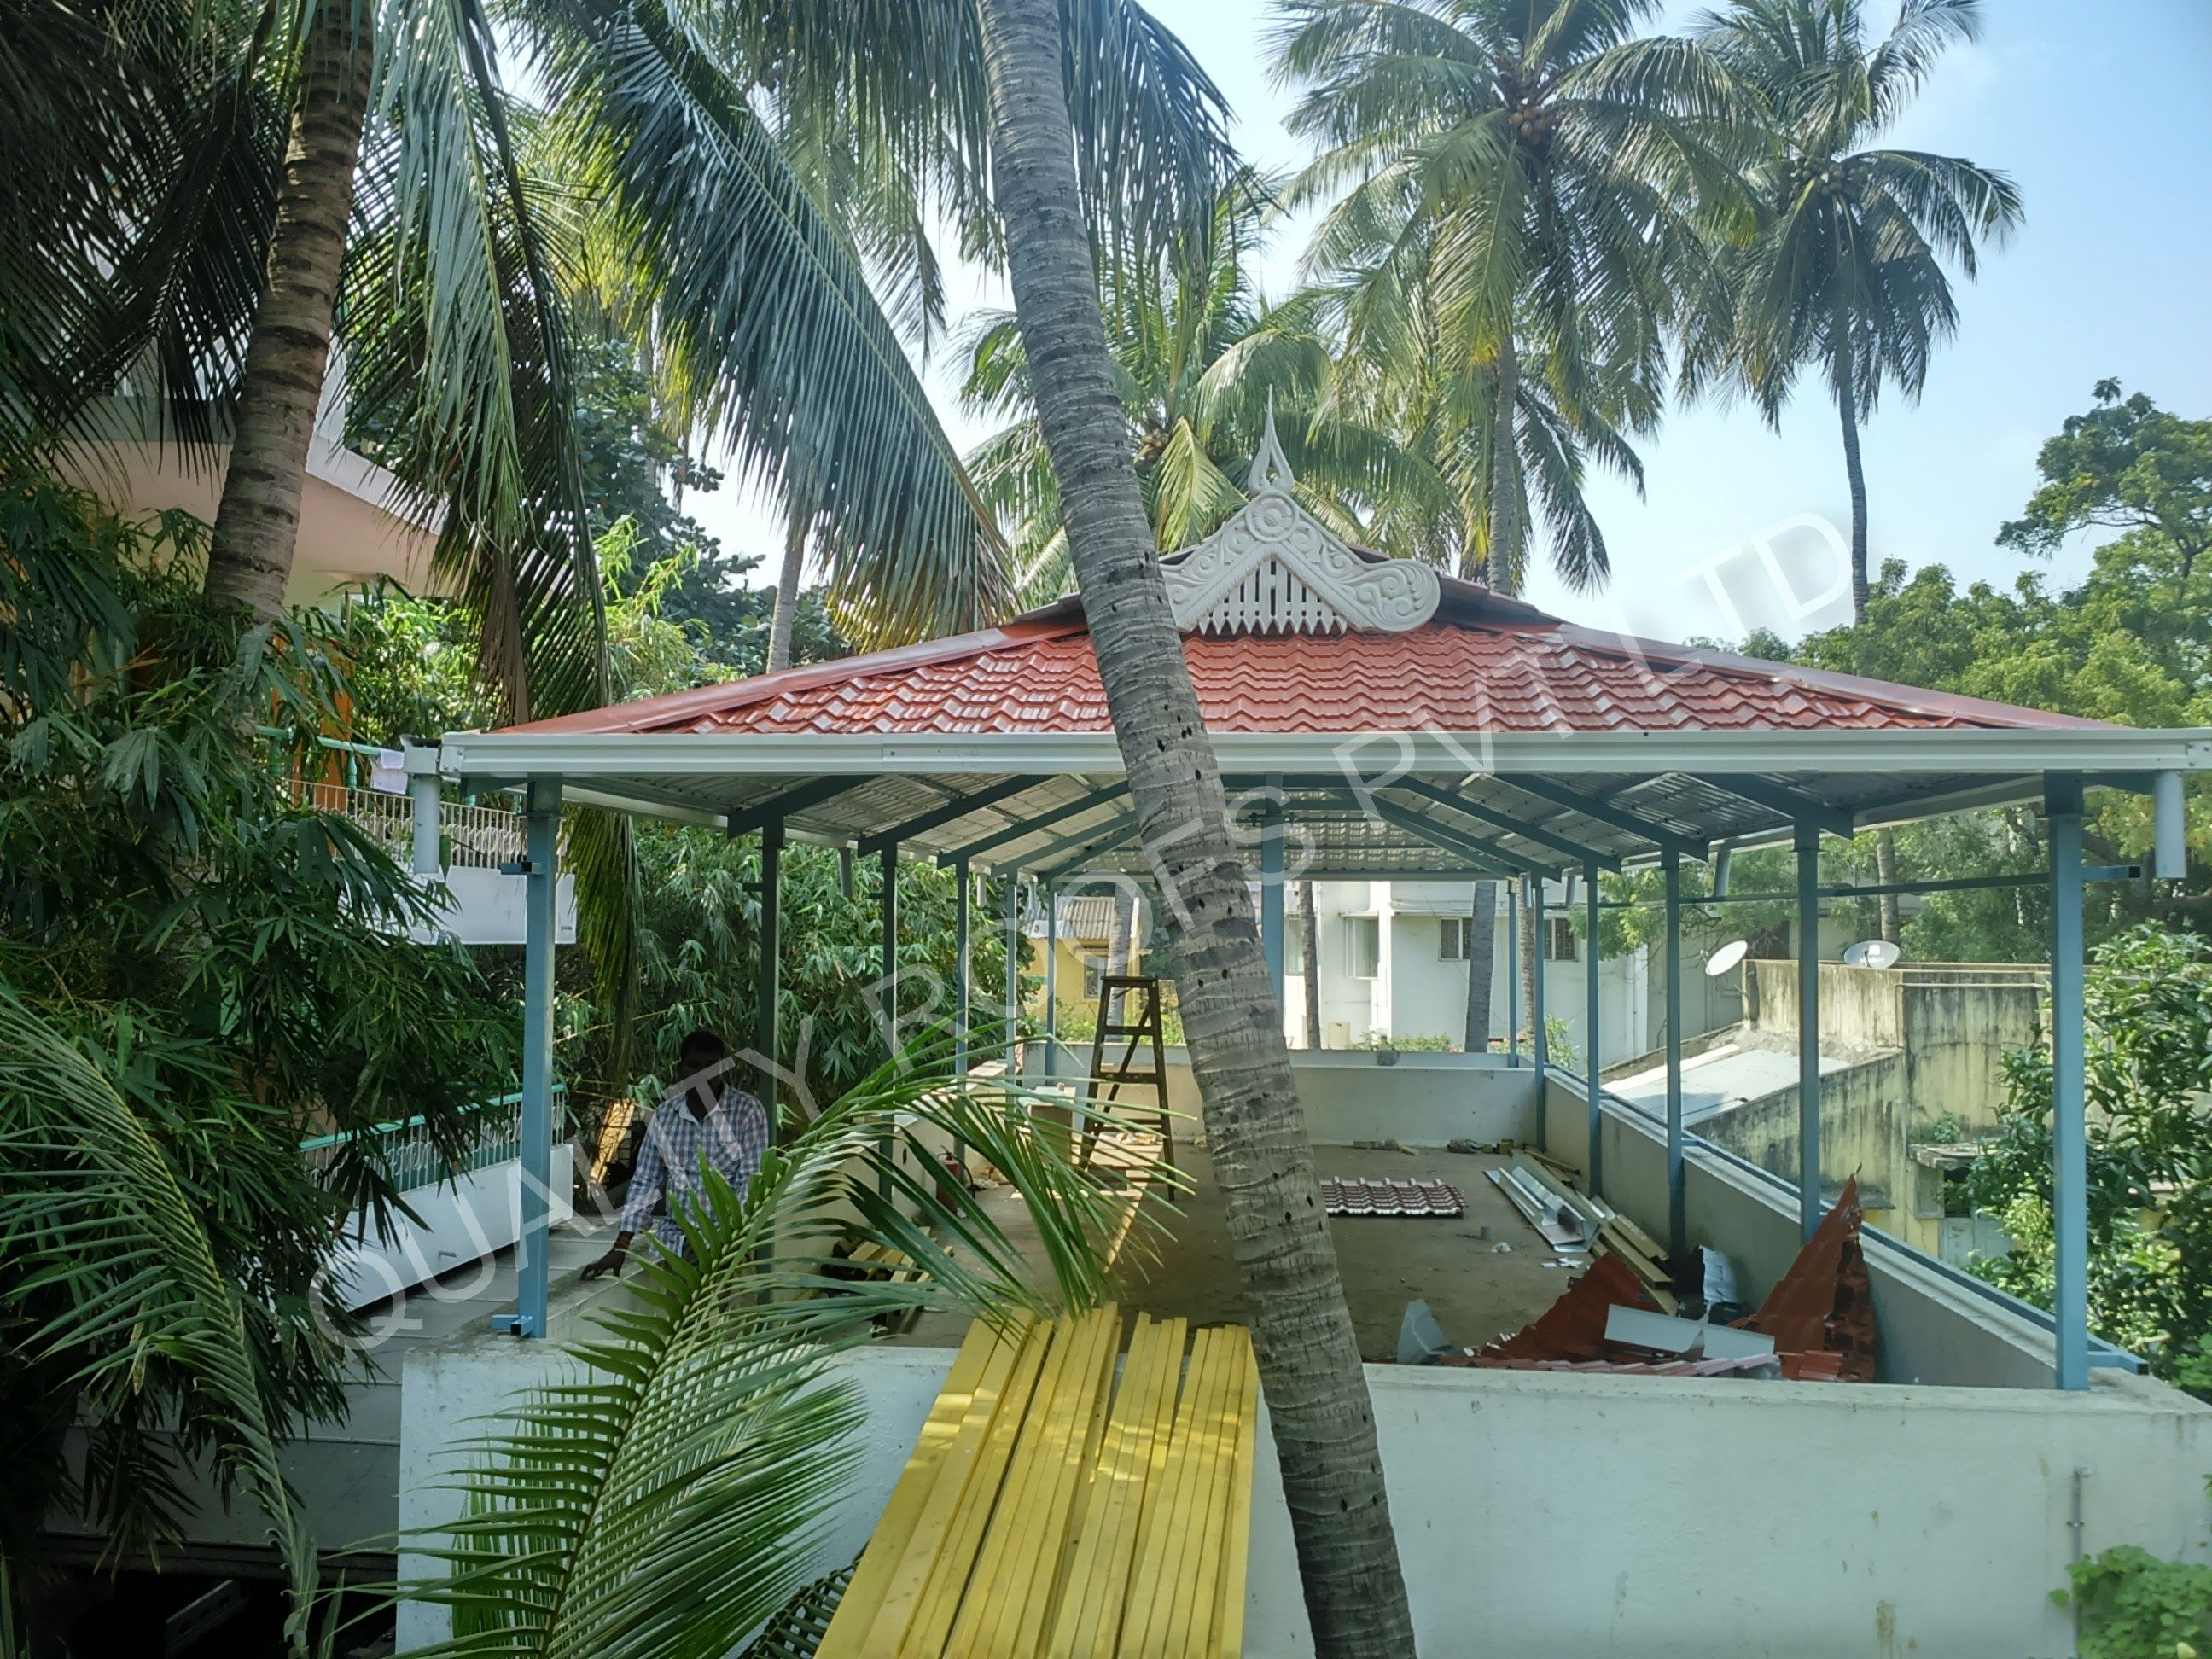 We Are The Leading Kerala Style Roofing Contractors In Tamilnadu We Are Specialized In All Types Of Kerala Style Ro Rooftop Terrace Design Roofing Shed Design